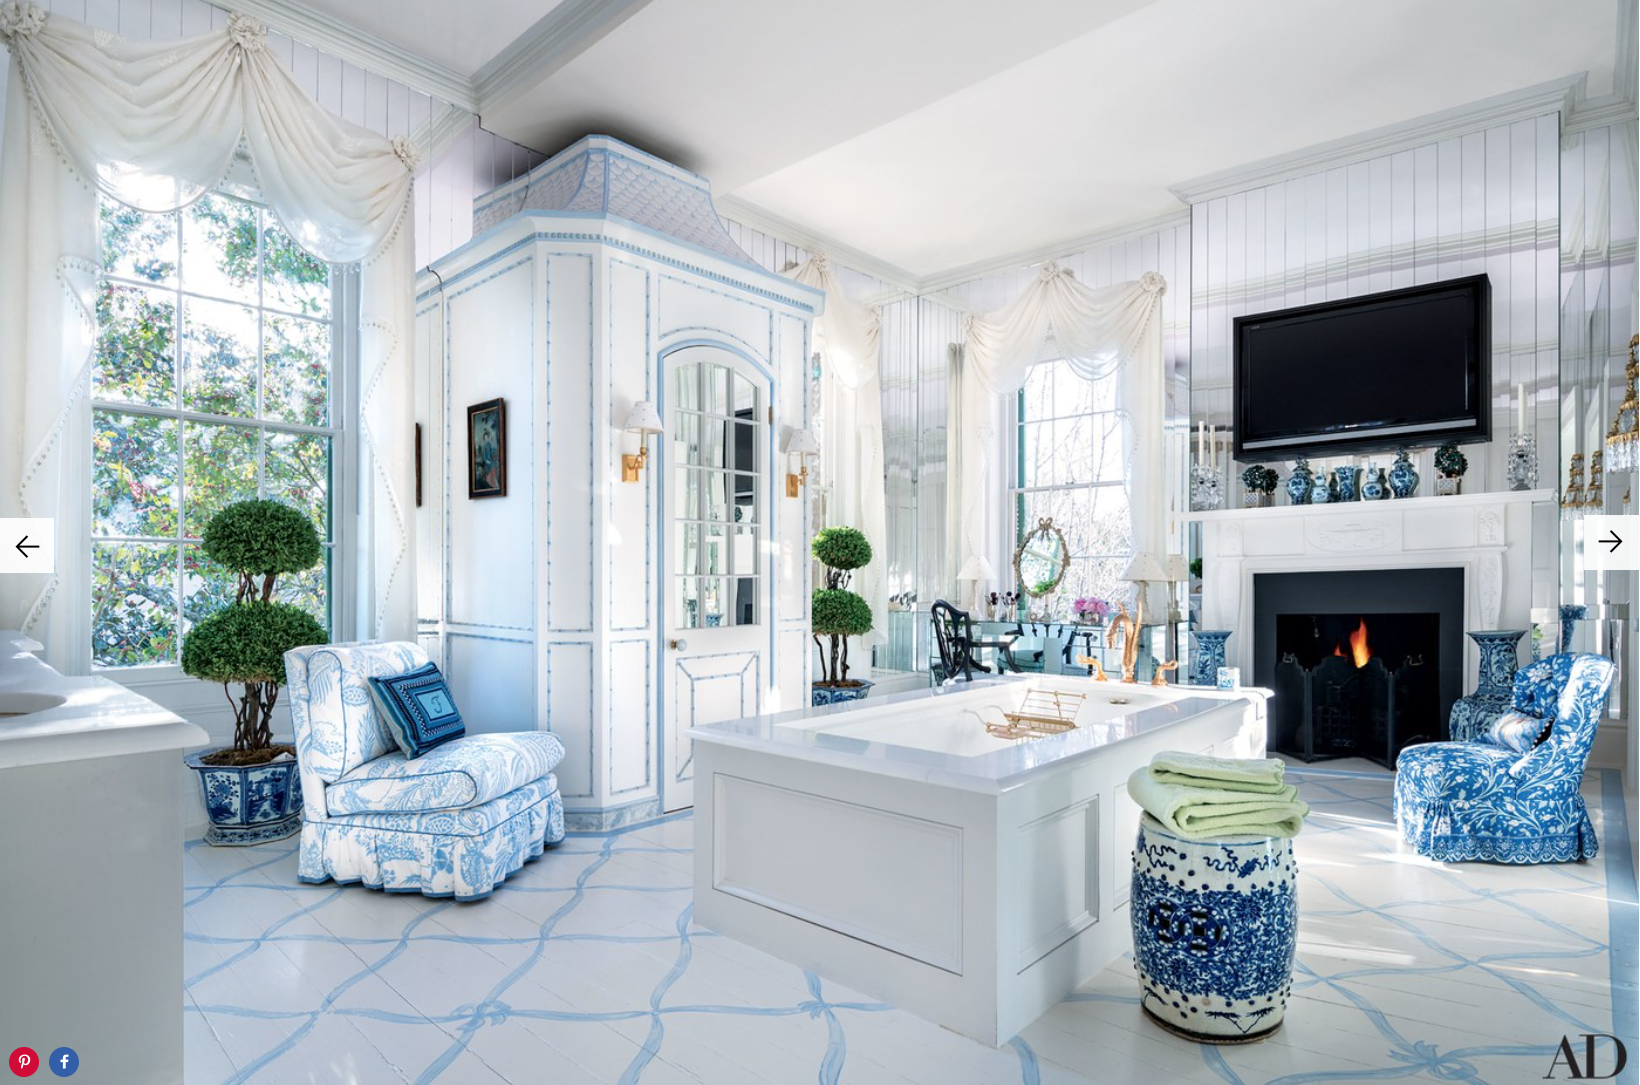 In the master bath, the toilet is concealed in a tall chinoiserie cabinet; a Manuel Canovas print covers the slipper chair at left, a Brunschwig & Fils fabric was used on the chair at right, and the garden stool is from John Rosselli Antiques.